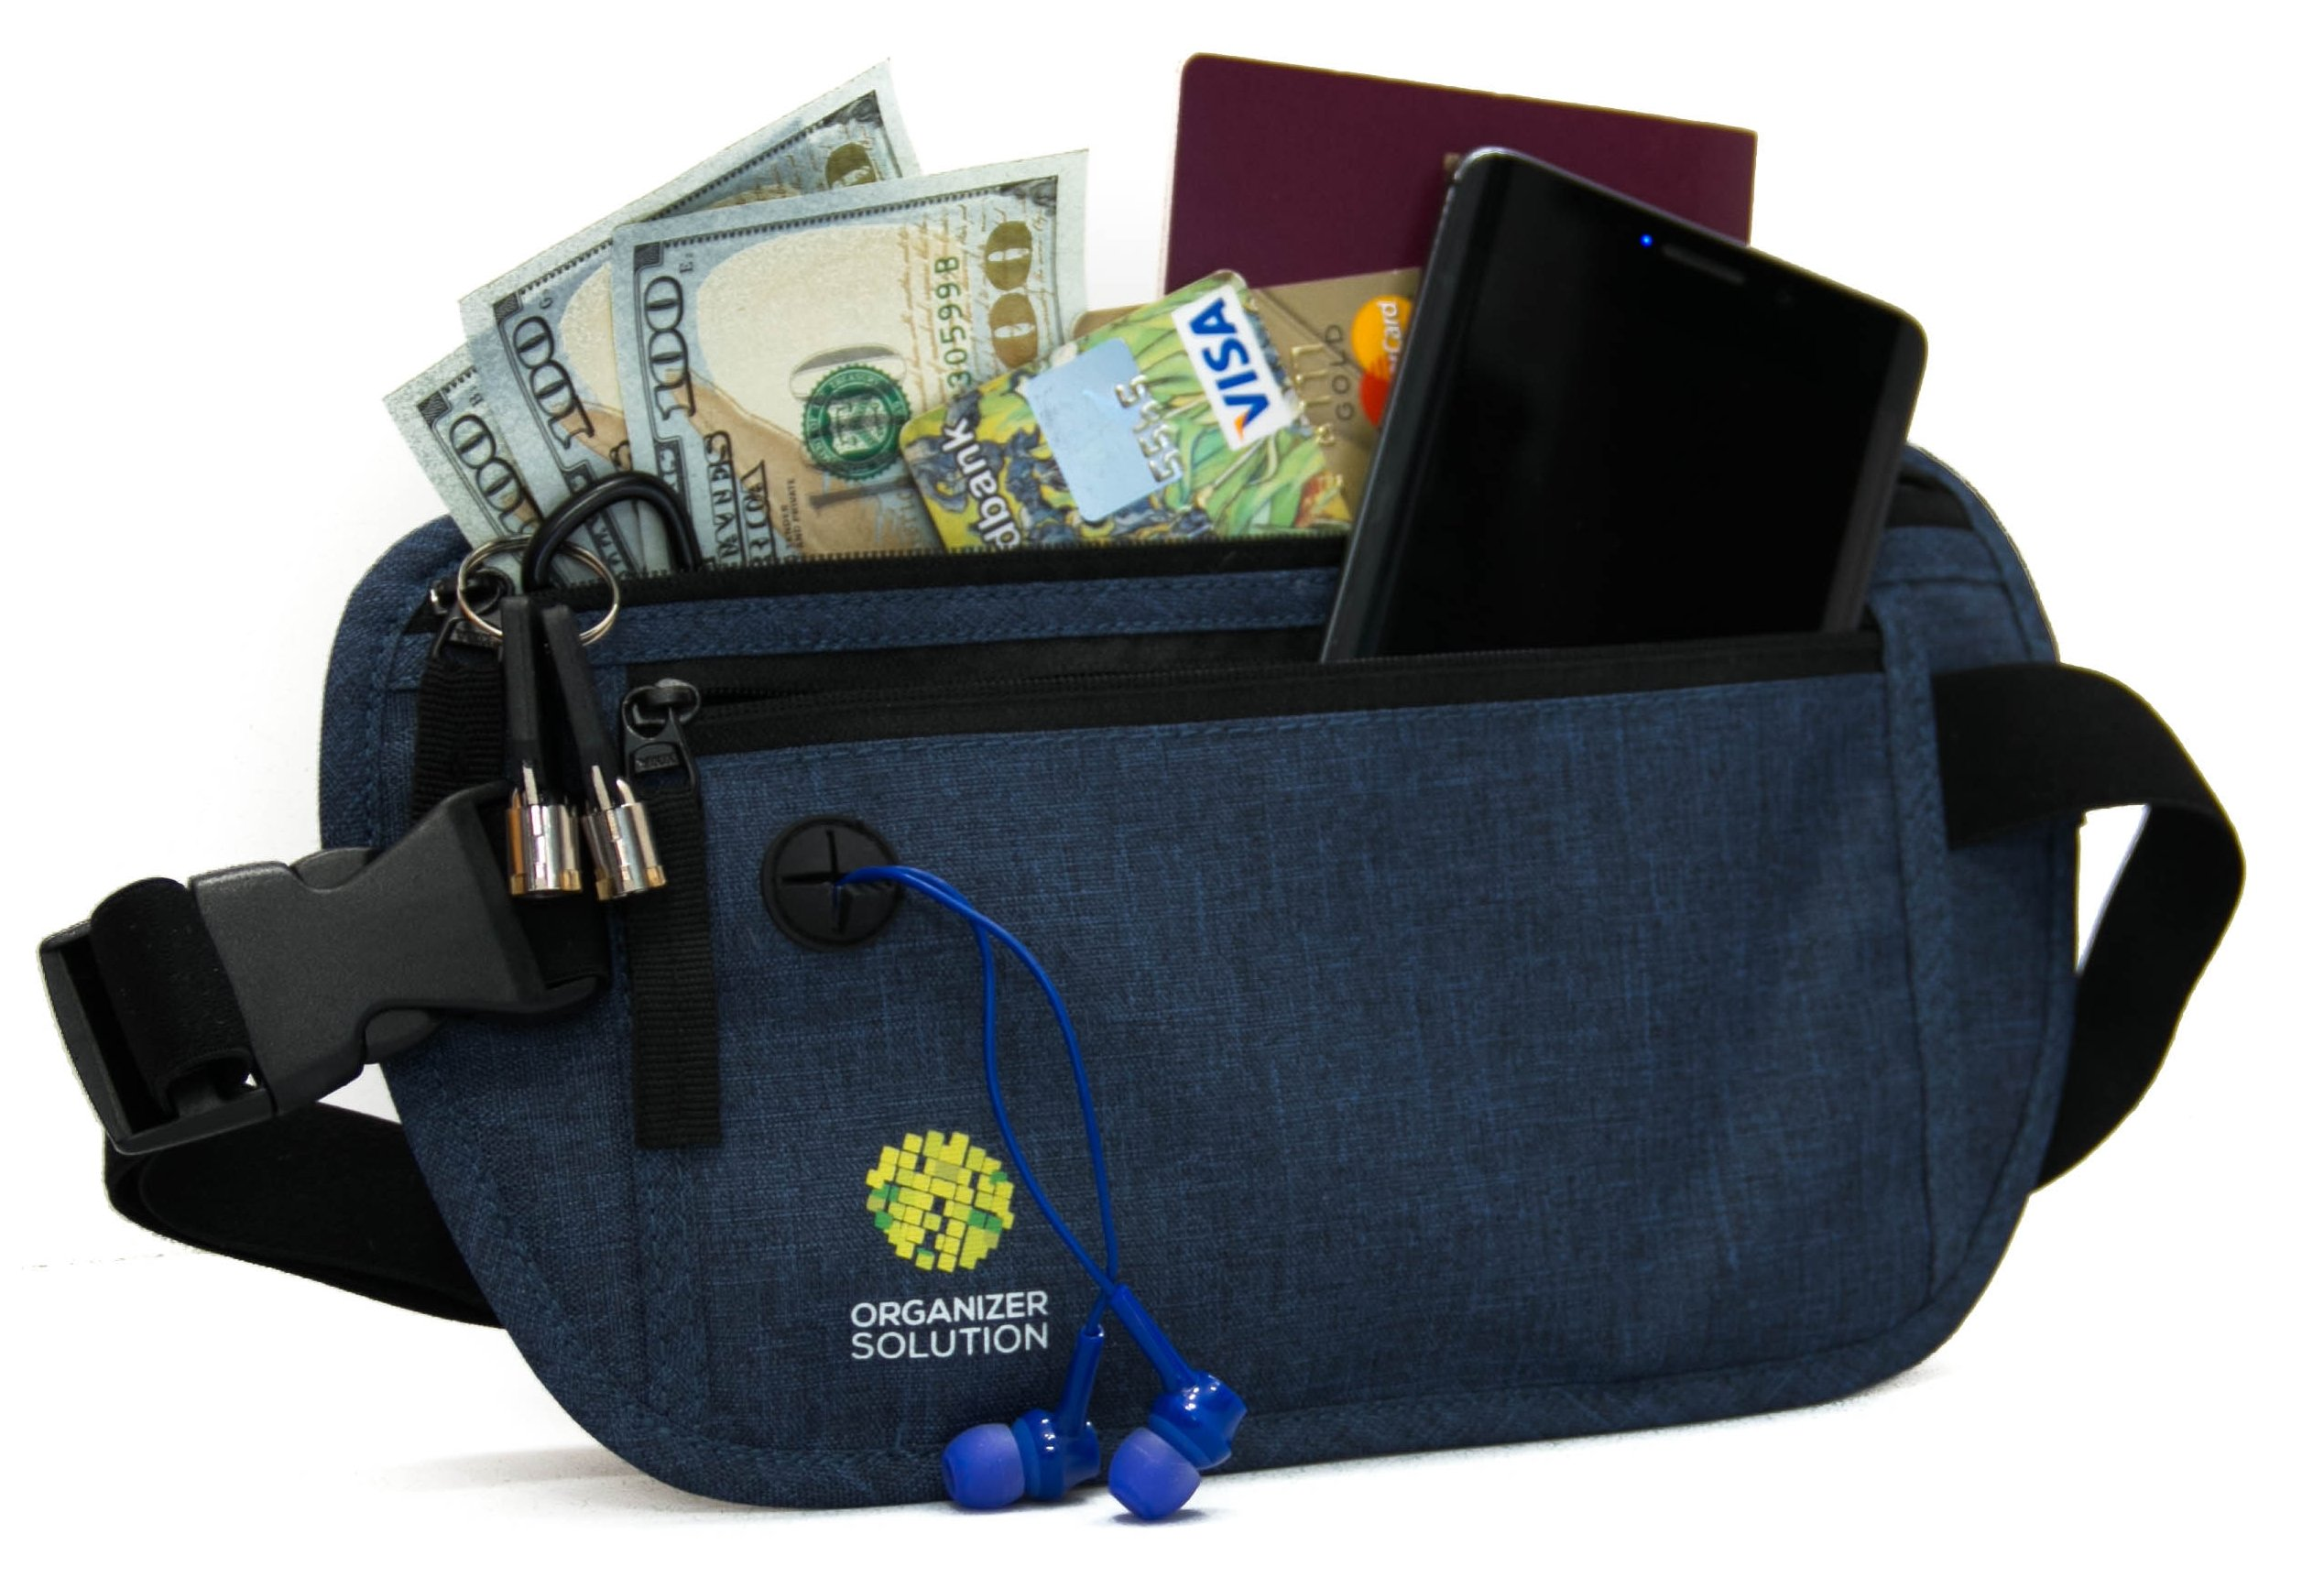 Money belt for travel and daily use with rfid protection, travel waist wallet (navy blue)